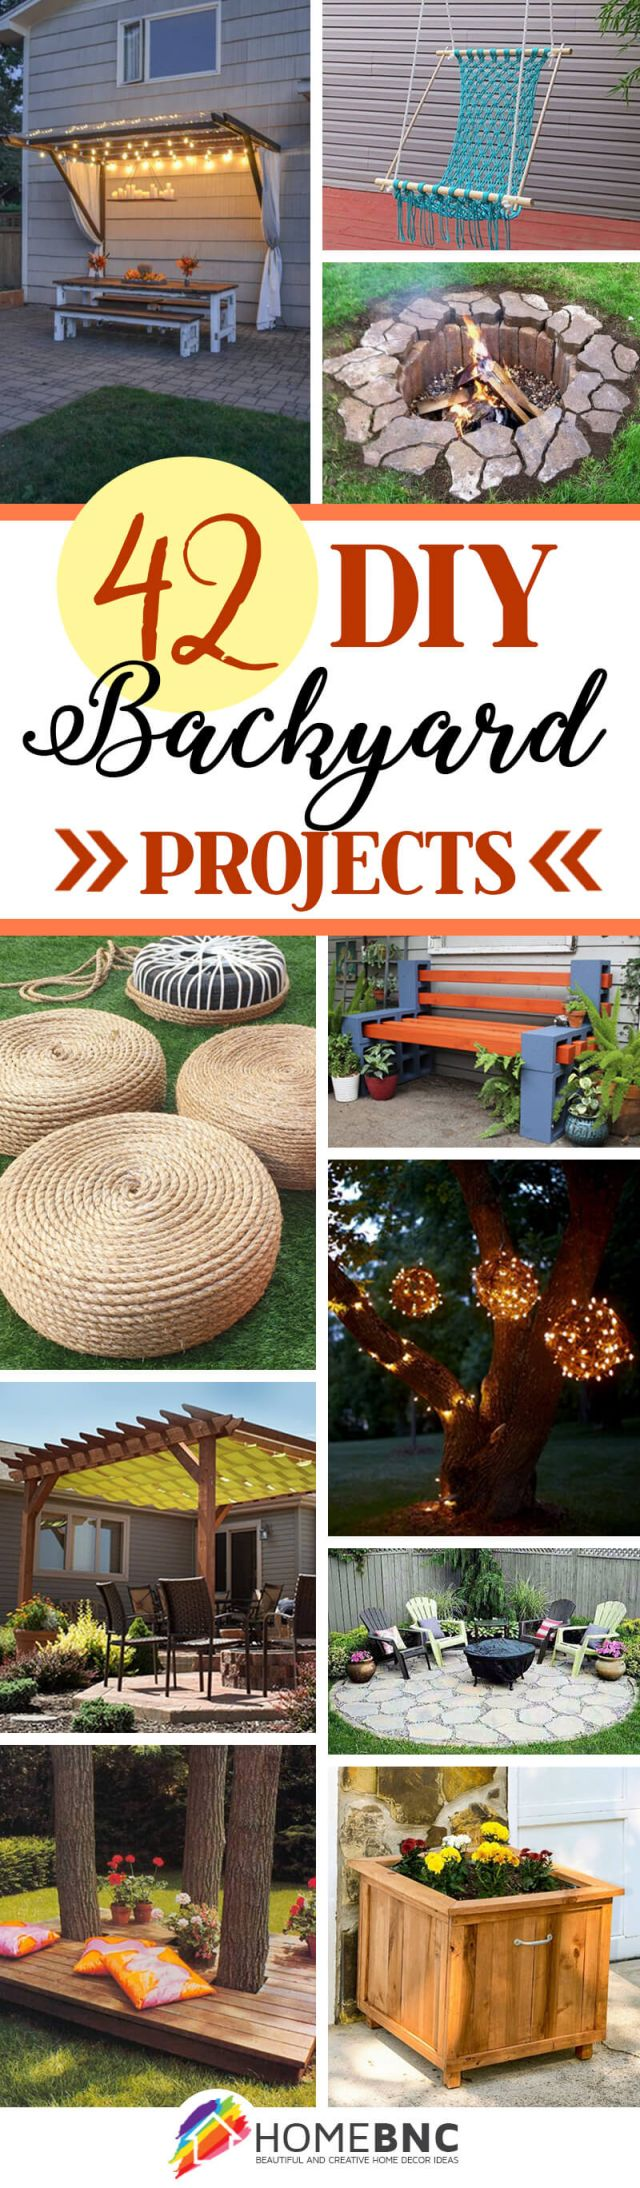 Adorable diy building projects for home